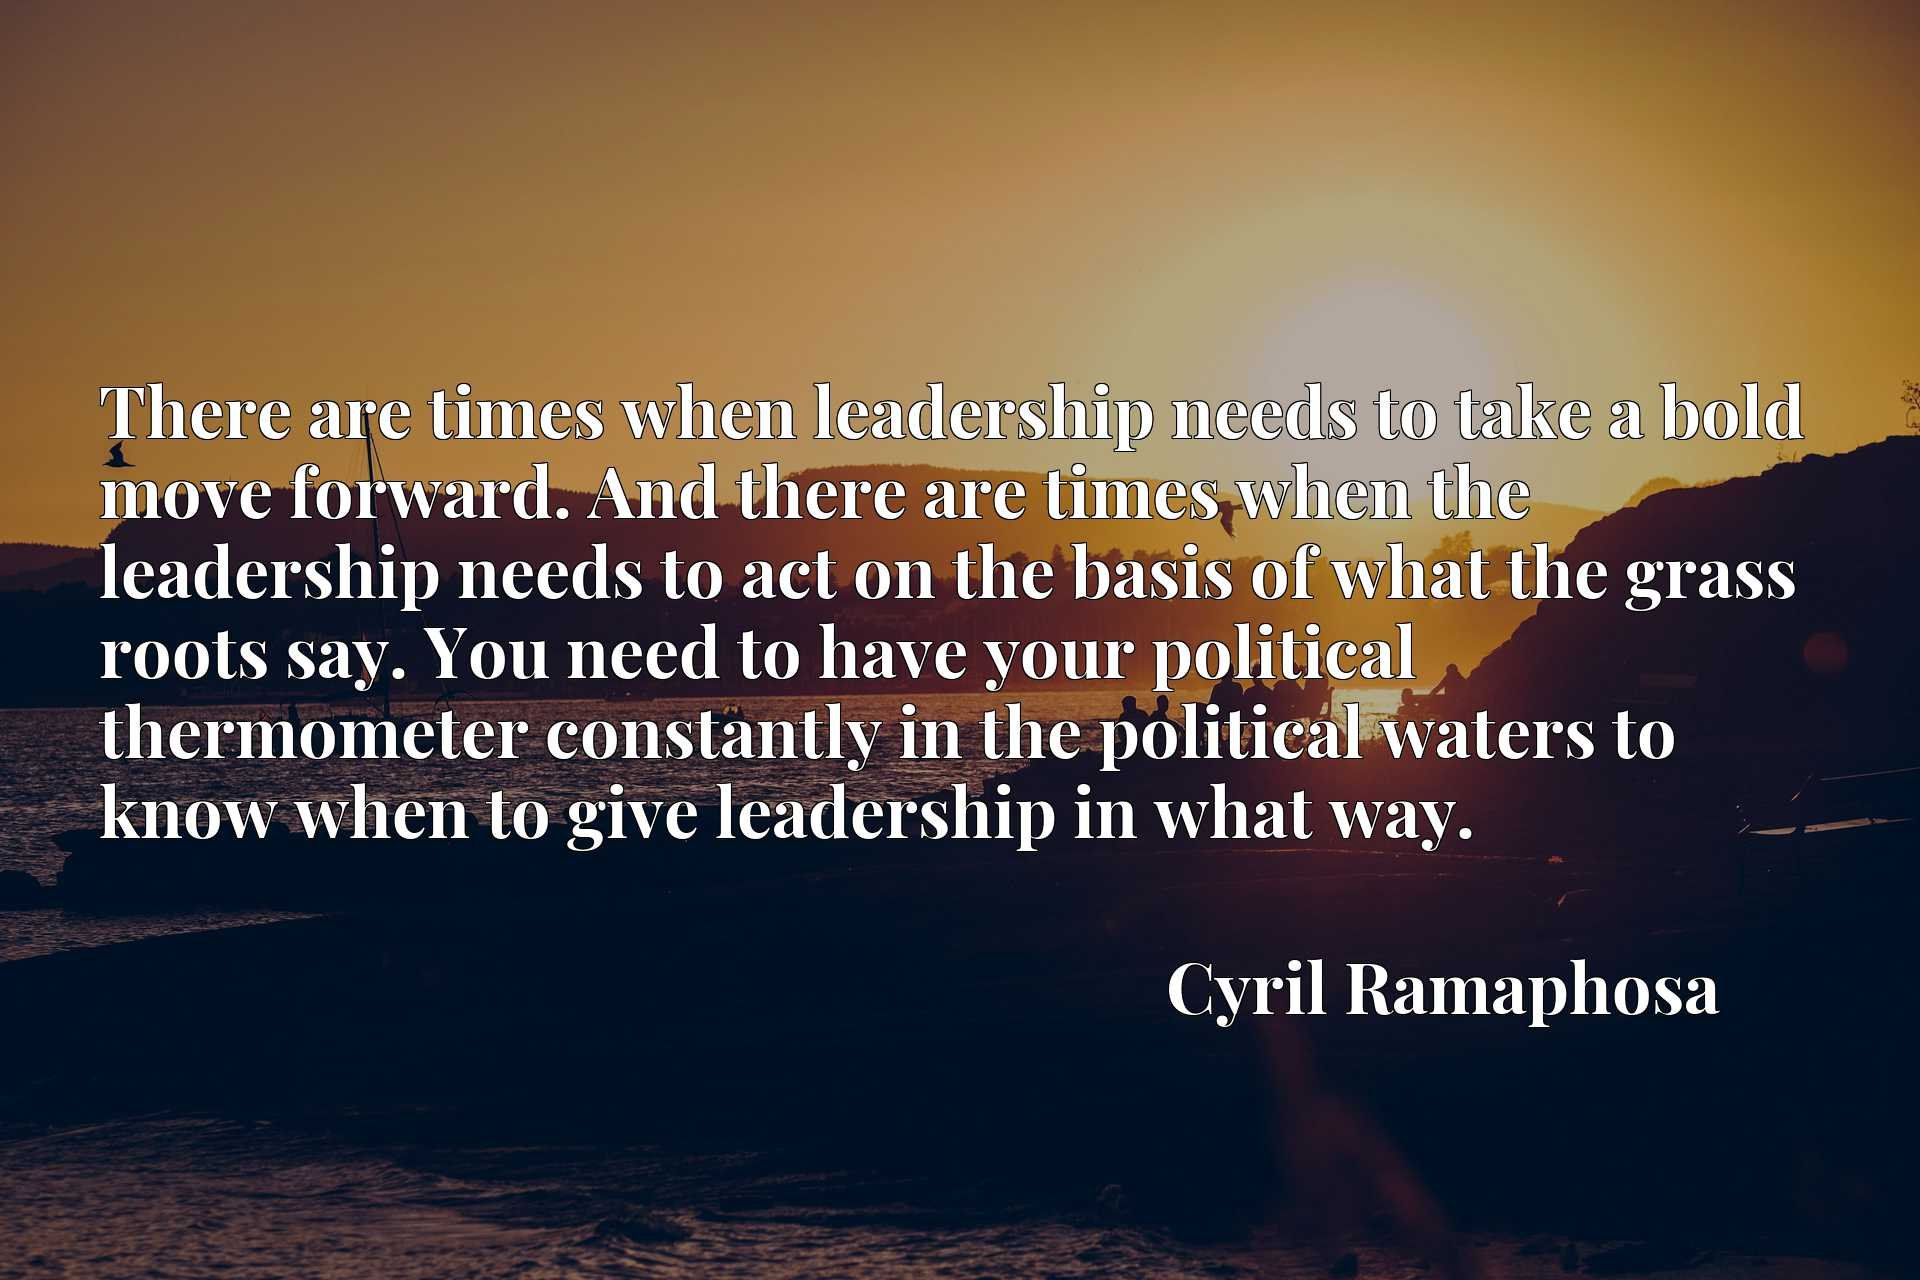 There are times when leadership needs to take a bold move forward. And there are times when the leadership needs to act on the basis of what the grass roots say. You need to have your political thermometer constantly in the political waters to know when to give leadership in what way.